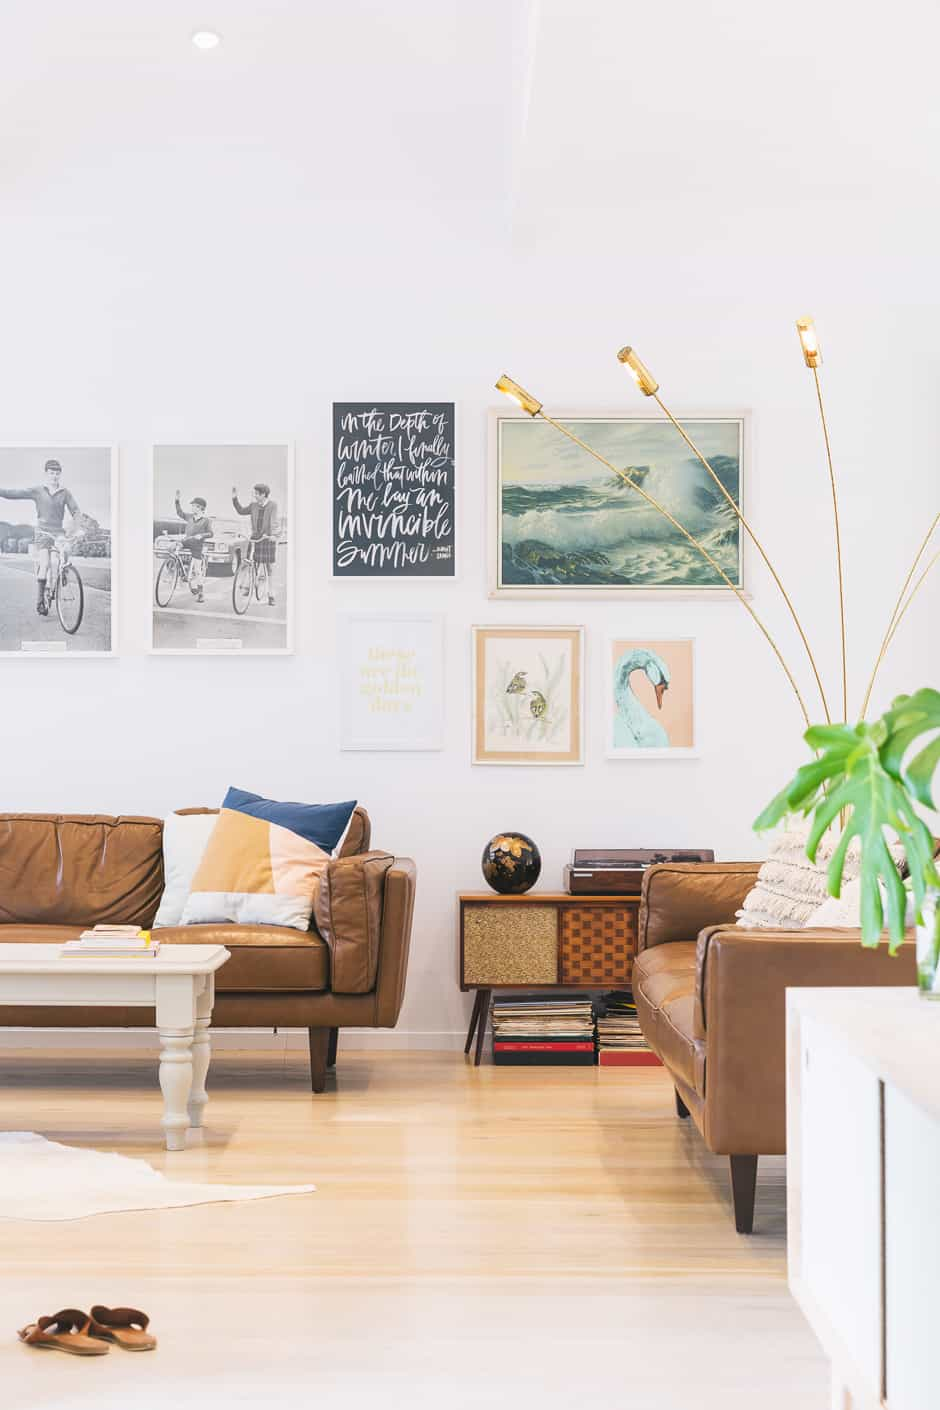 LIVING Houseplants are an essential for Clare, who incorporates them into vignettes in every room. A recessed area off the hallway was originally intended to be a cupboard, but the installation of an in-built desk has seen it become an office that allows Clare to freelance from home.